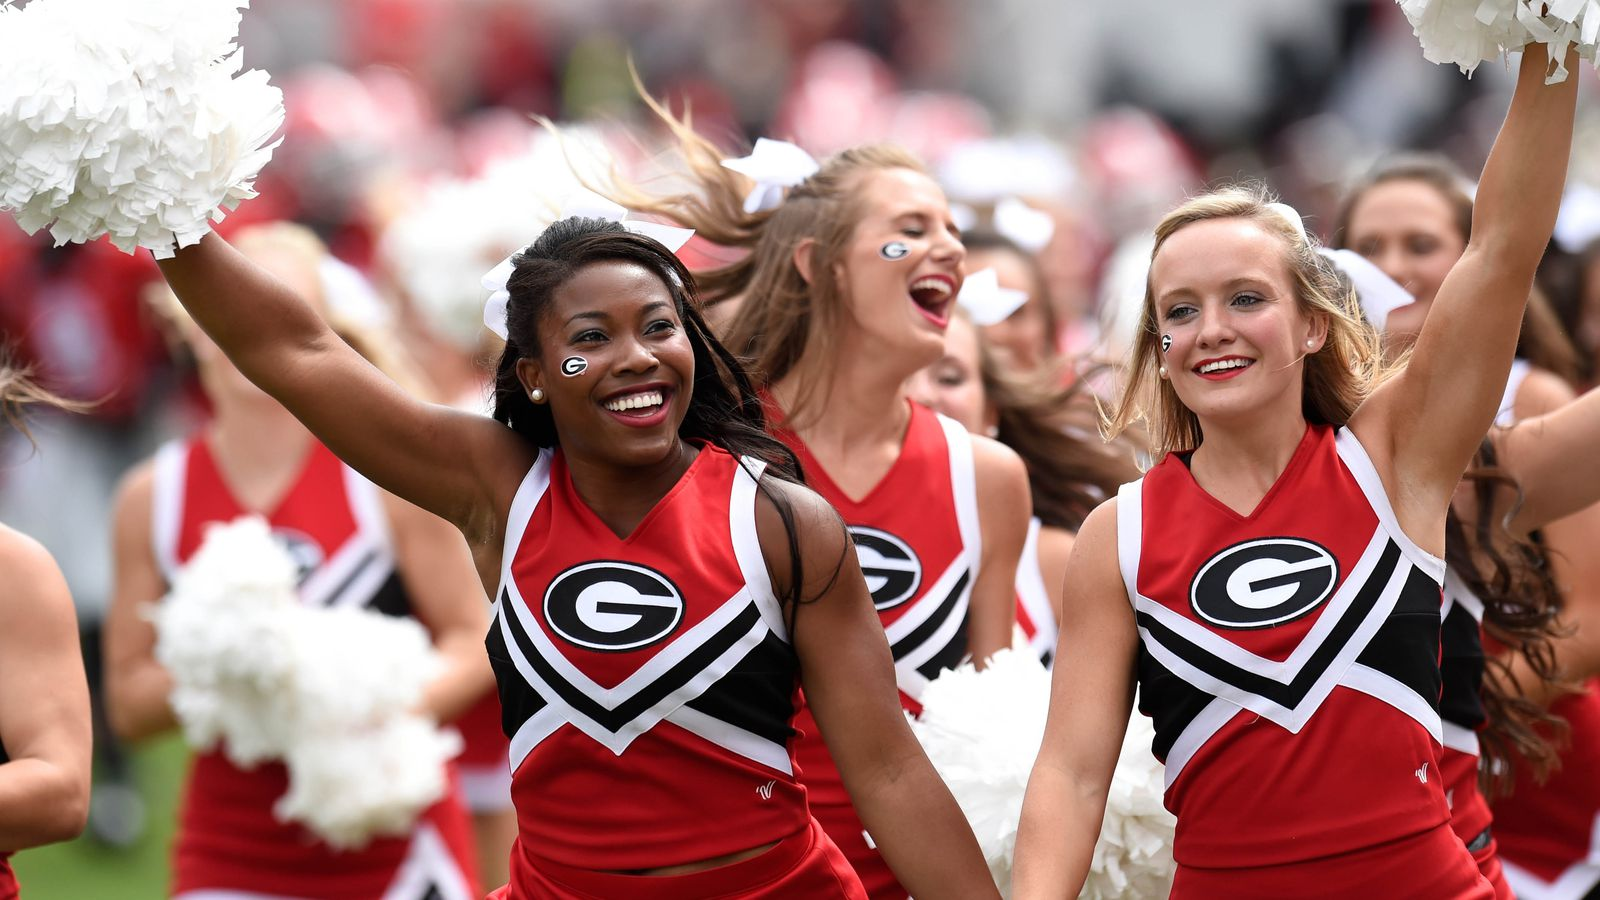 georgia-cheerleaders-gone-wild-naked-girlfriend-submitted-photos